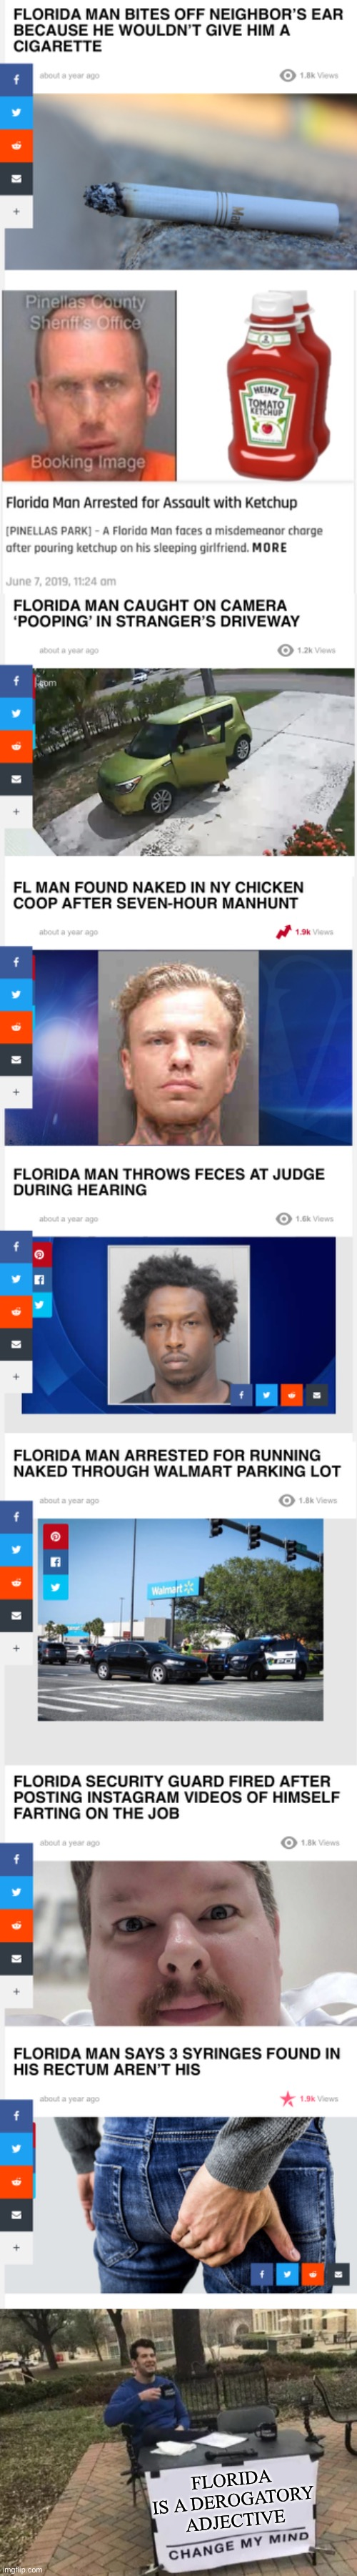 """Florida man headlines""Search it. You won't regret. 